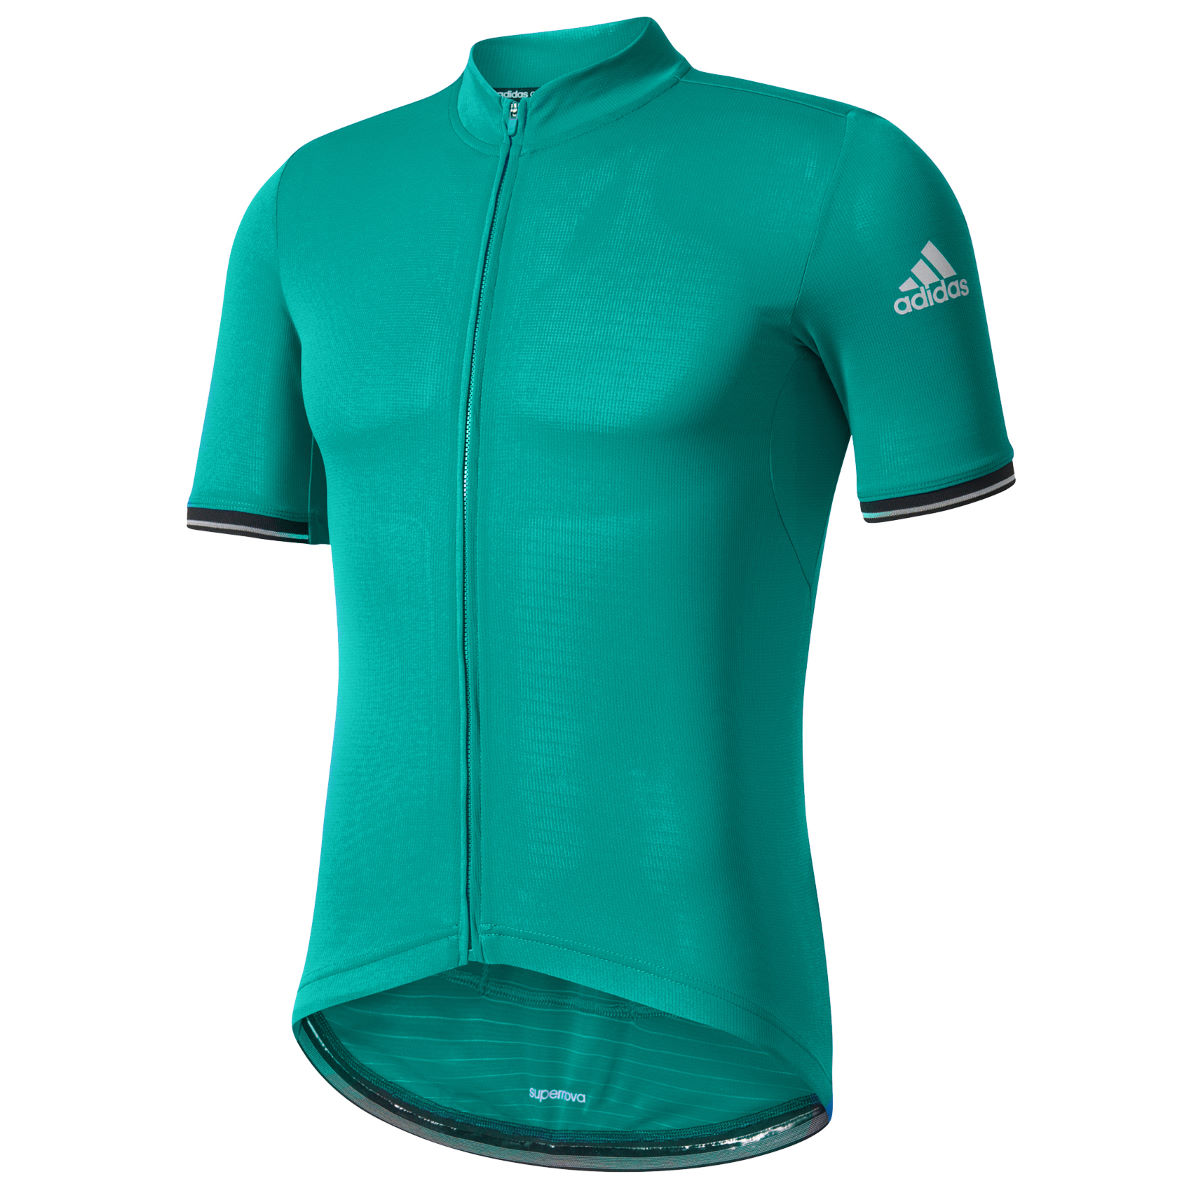 Maillot Adidas Cycling Clima Chill (manches courtes) - M Core Green